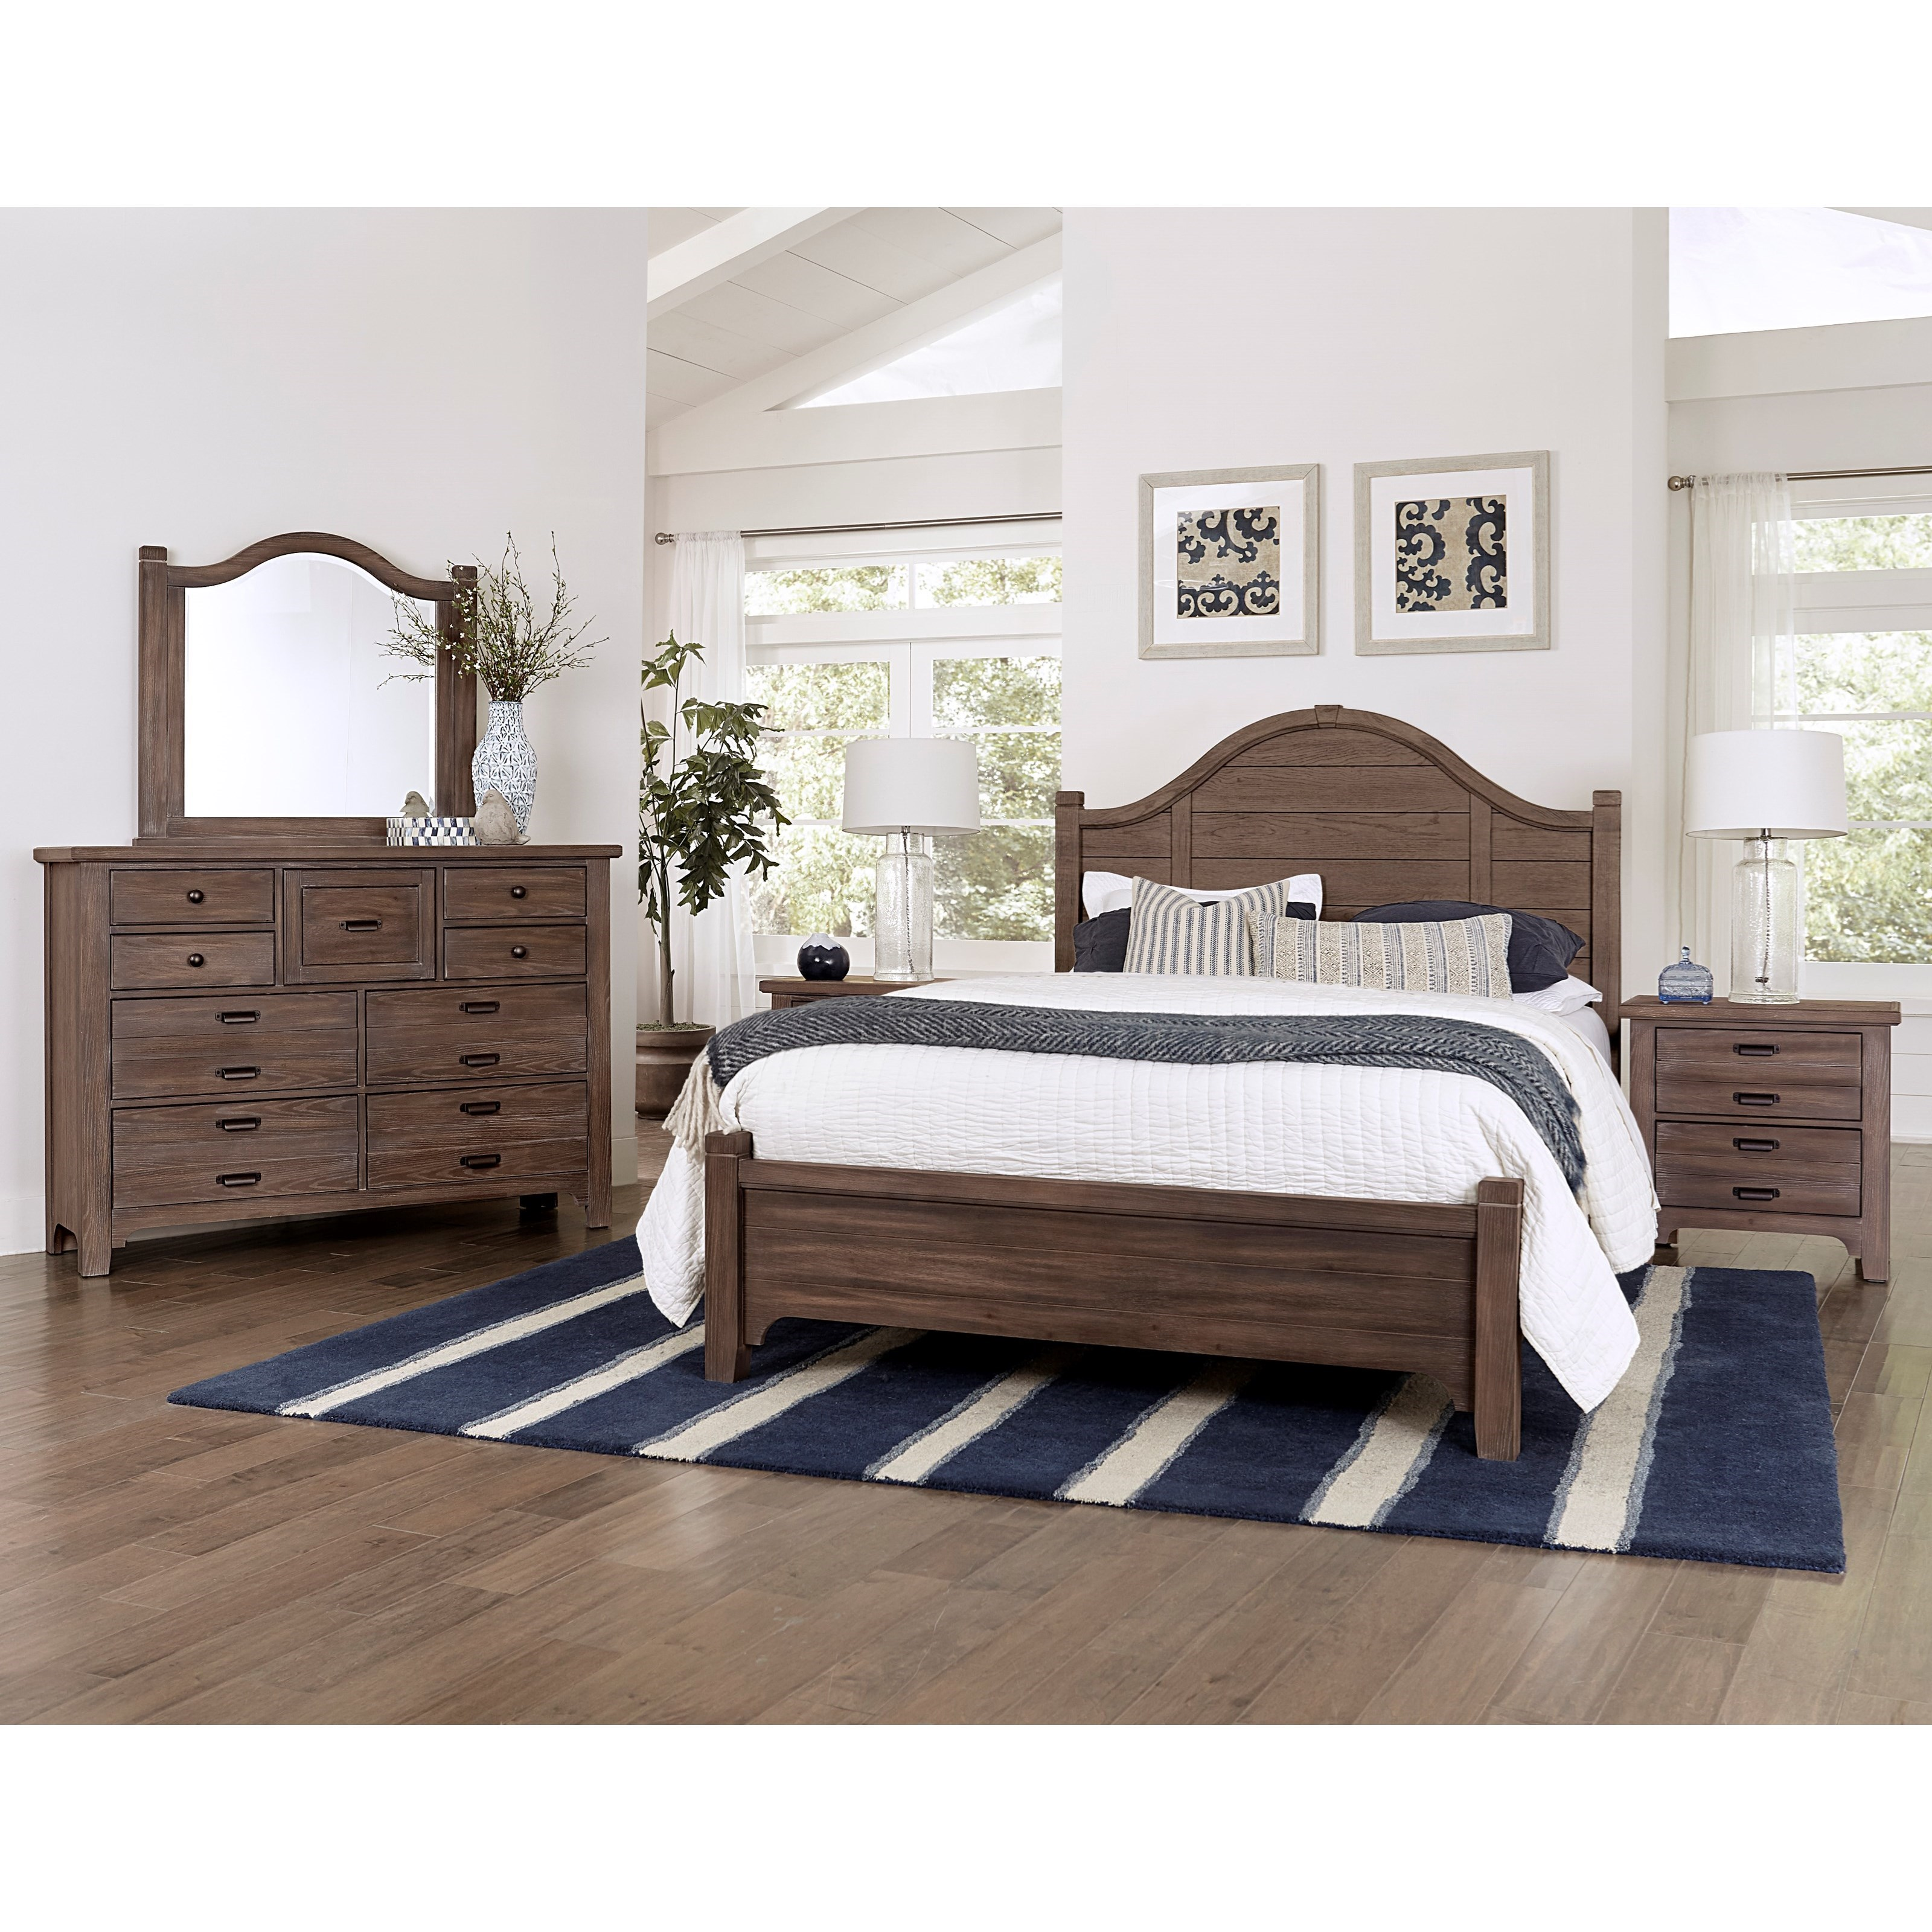 Bungalow King Bedroom Group by Laurel Mercantile Co. at Home Collections Furniture